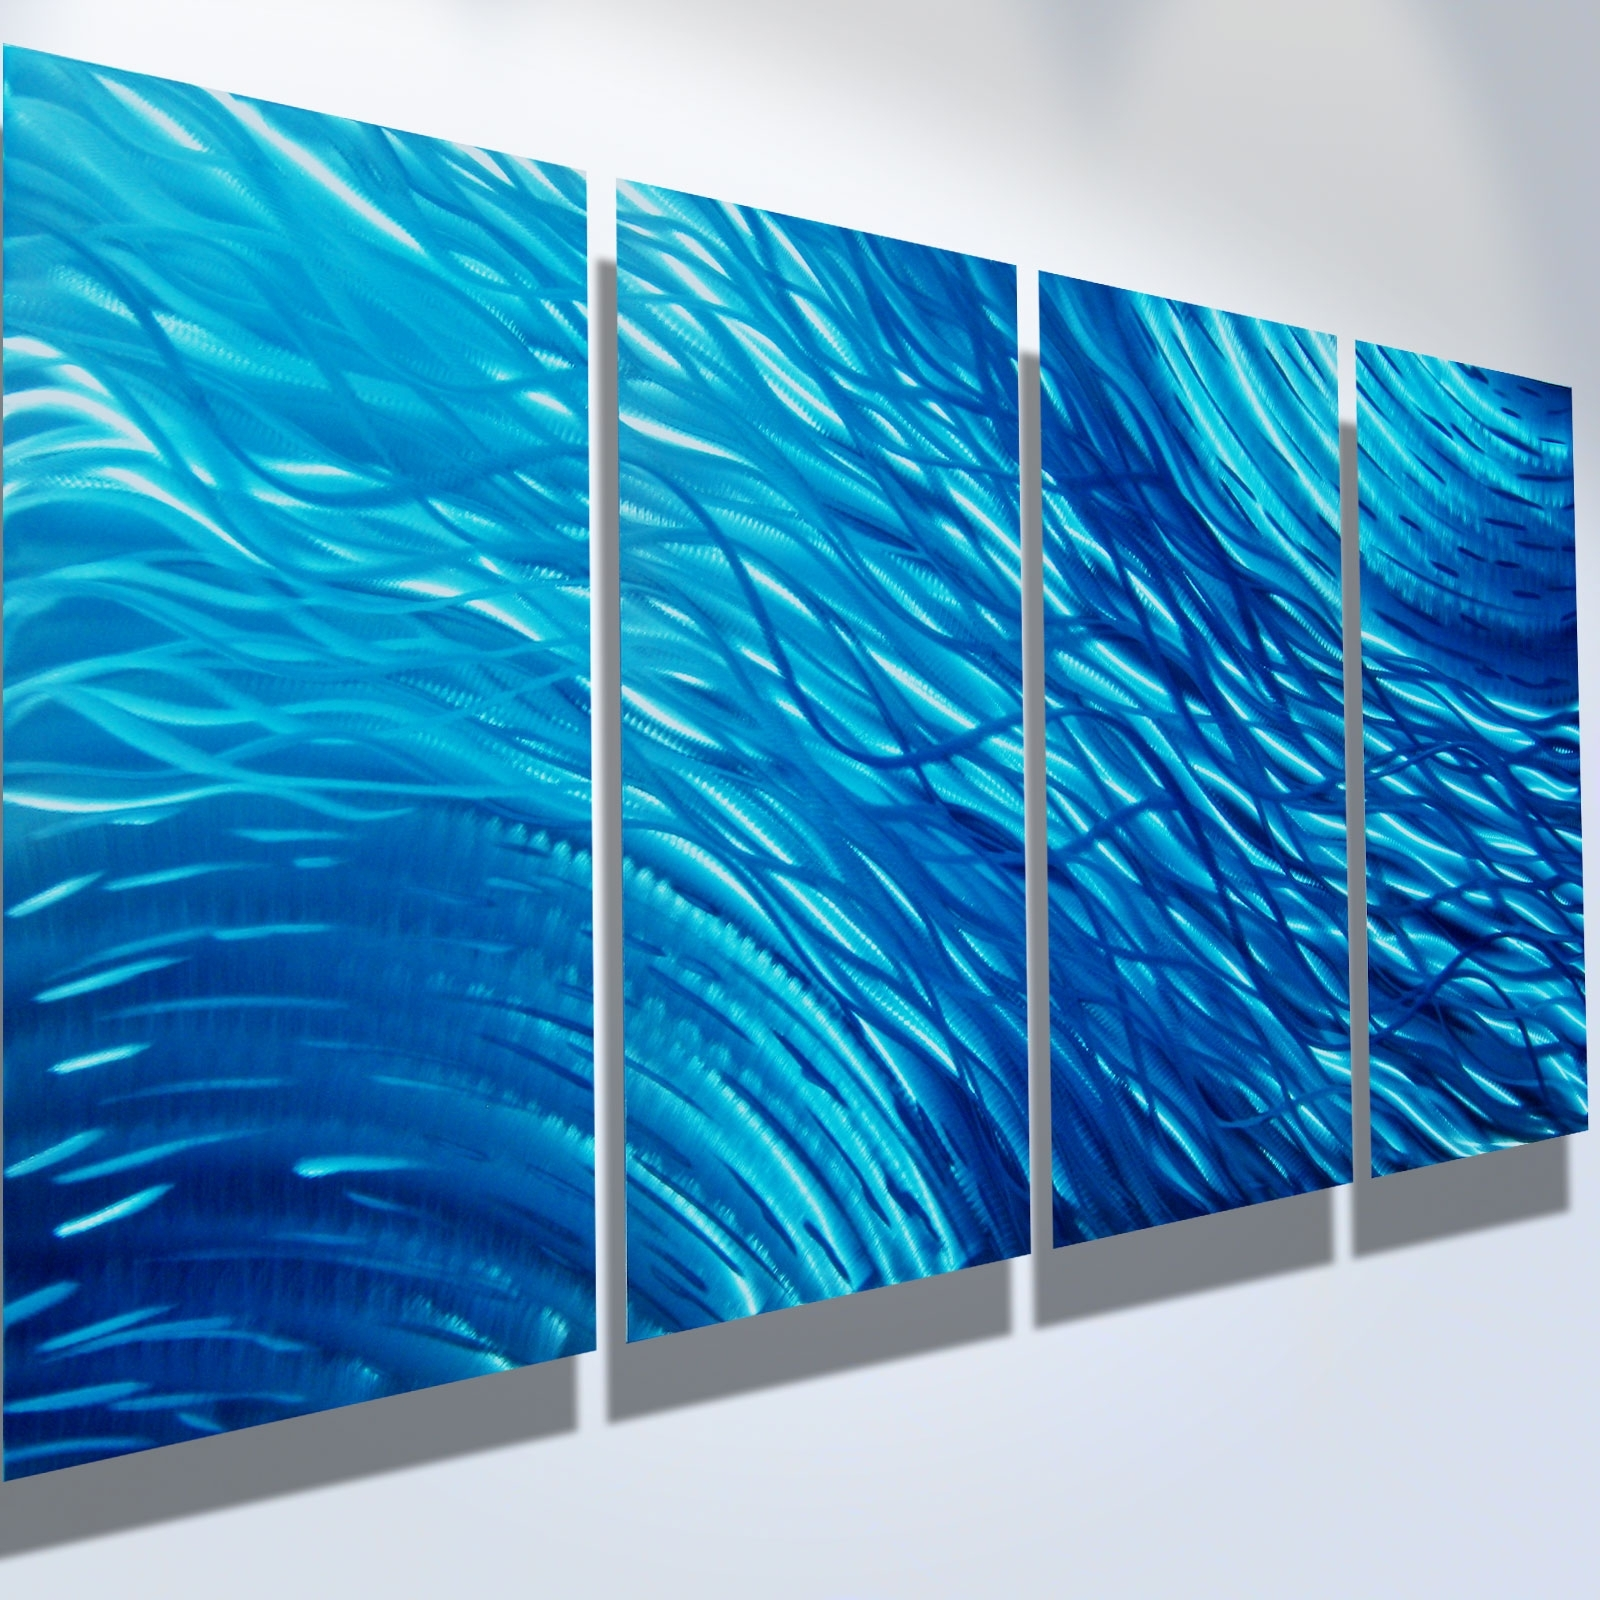 Abstract Ocean Wall Art Pertaining To Recent Ocean Metal Wall Art Abstract Contemporary Modern Decor (View 2 of 15)